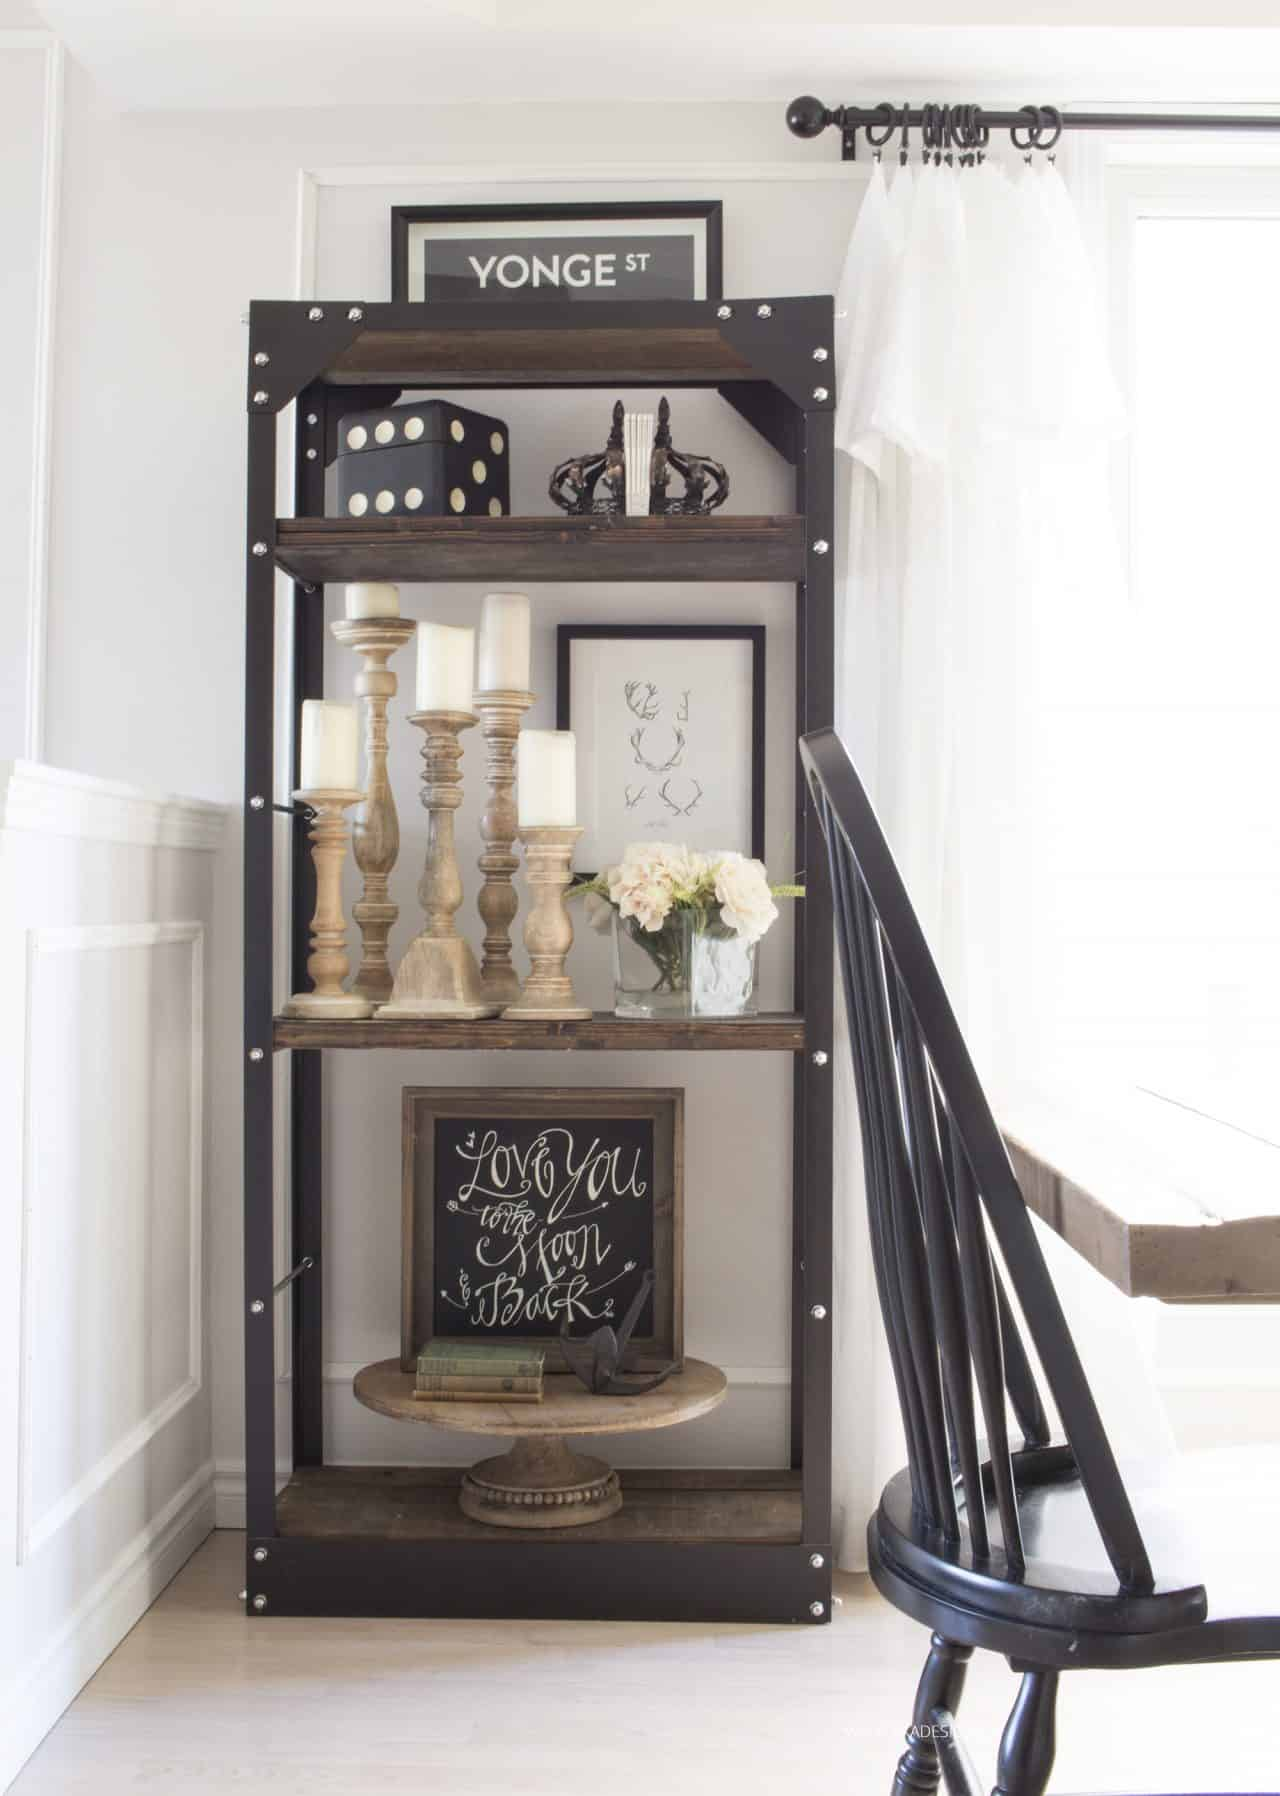 rustic industrial metal and wood shelves in dining room filled with farmhouse style decor like candle sticks and antlers